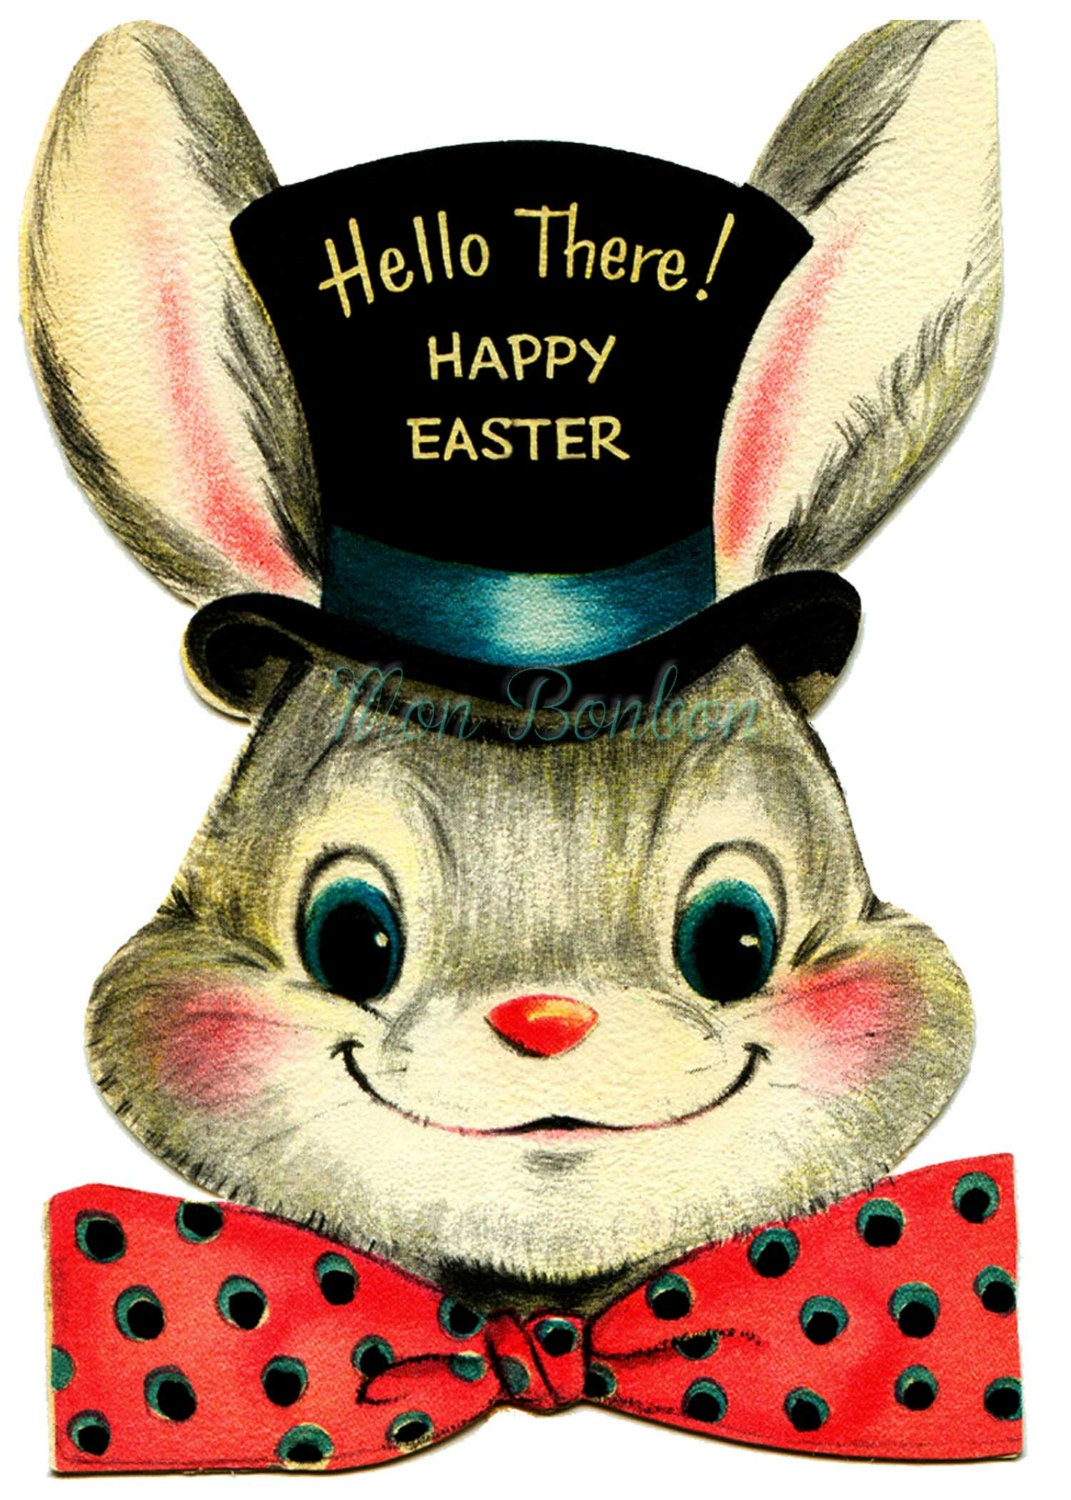 Vintage Easter Bunny Clip Art 4x6 Digital Clip Art Use For